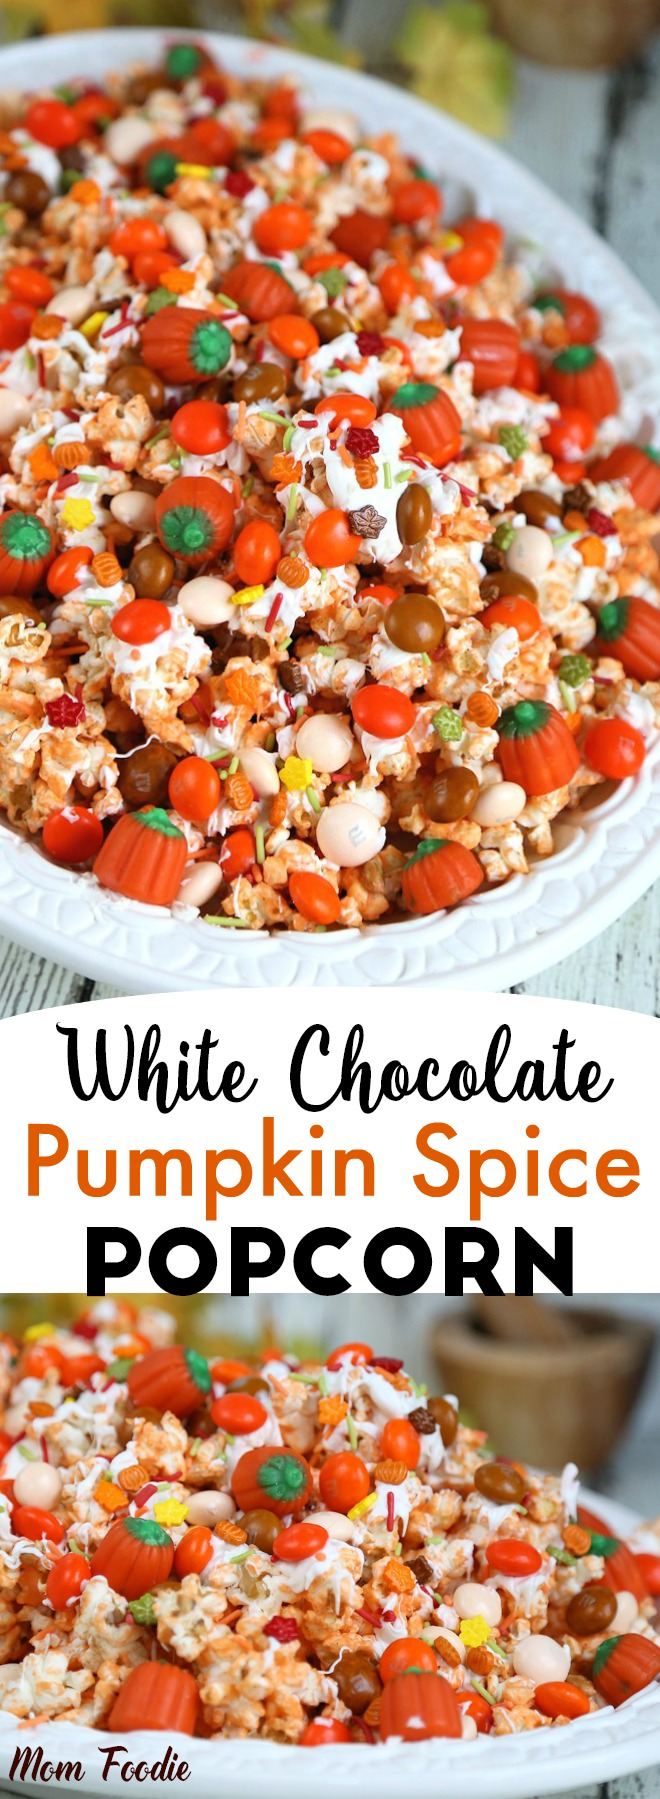 This Pumpkin Spice Popcorn recipe is the perfect blend of sweet and savory in a festive fall snack . The colorful fall pumpkin spice white chocolate popcorn mix is perfect for fall events such as Thanksgiving or a Halloween Party.